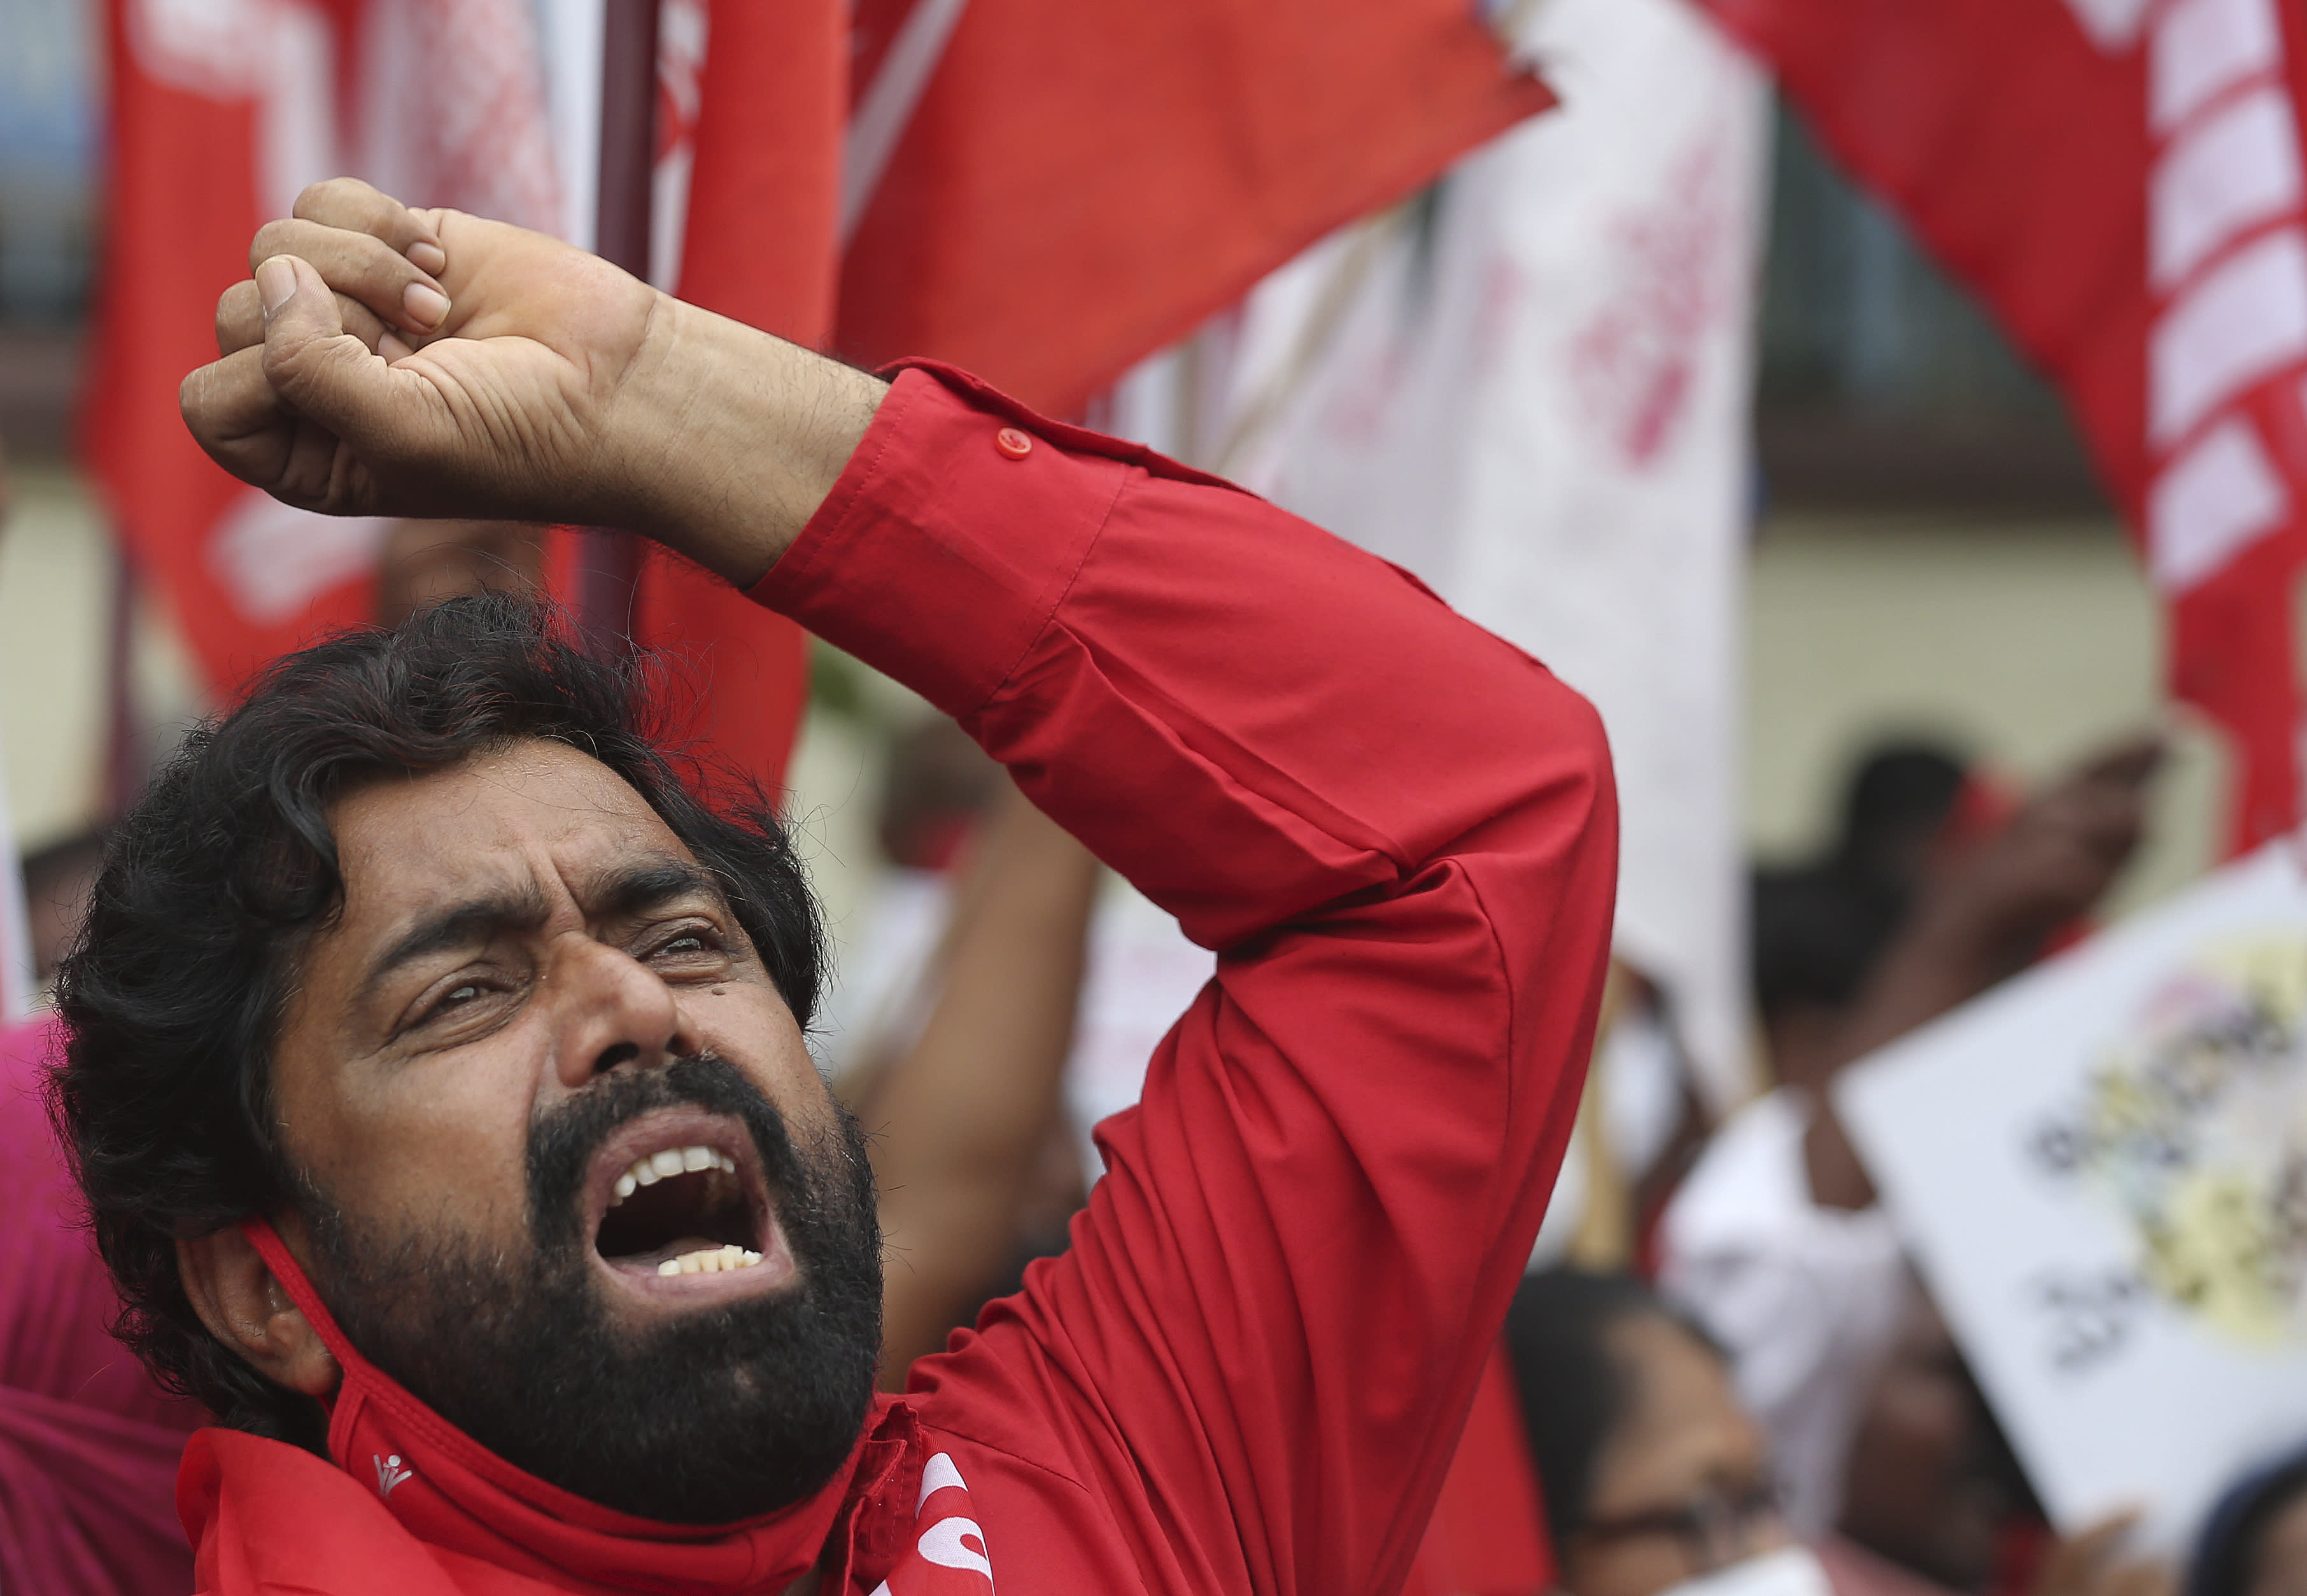 Members of All India Kisan Sangharsh Coordination Committee (AIKSCC) and activists of left parties and trade unions participate in a nationwide protest in Hyderabad, India, Friday, Sept. 25, 2020. Hundreds of Indian farmers took to the streets on Friday protesting new laws that the government says will boost growth in the farming sector through private investments, but they fear these are likely to be exploited by private players for buying their crops cheaply. (AP Photo/Mahesh Kumar A.)